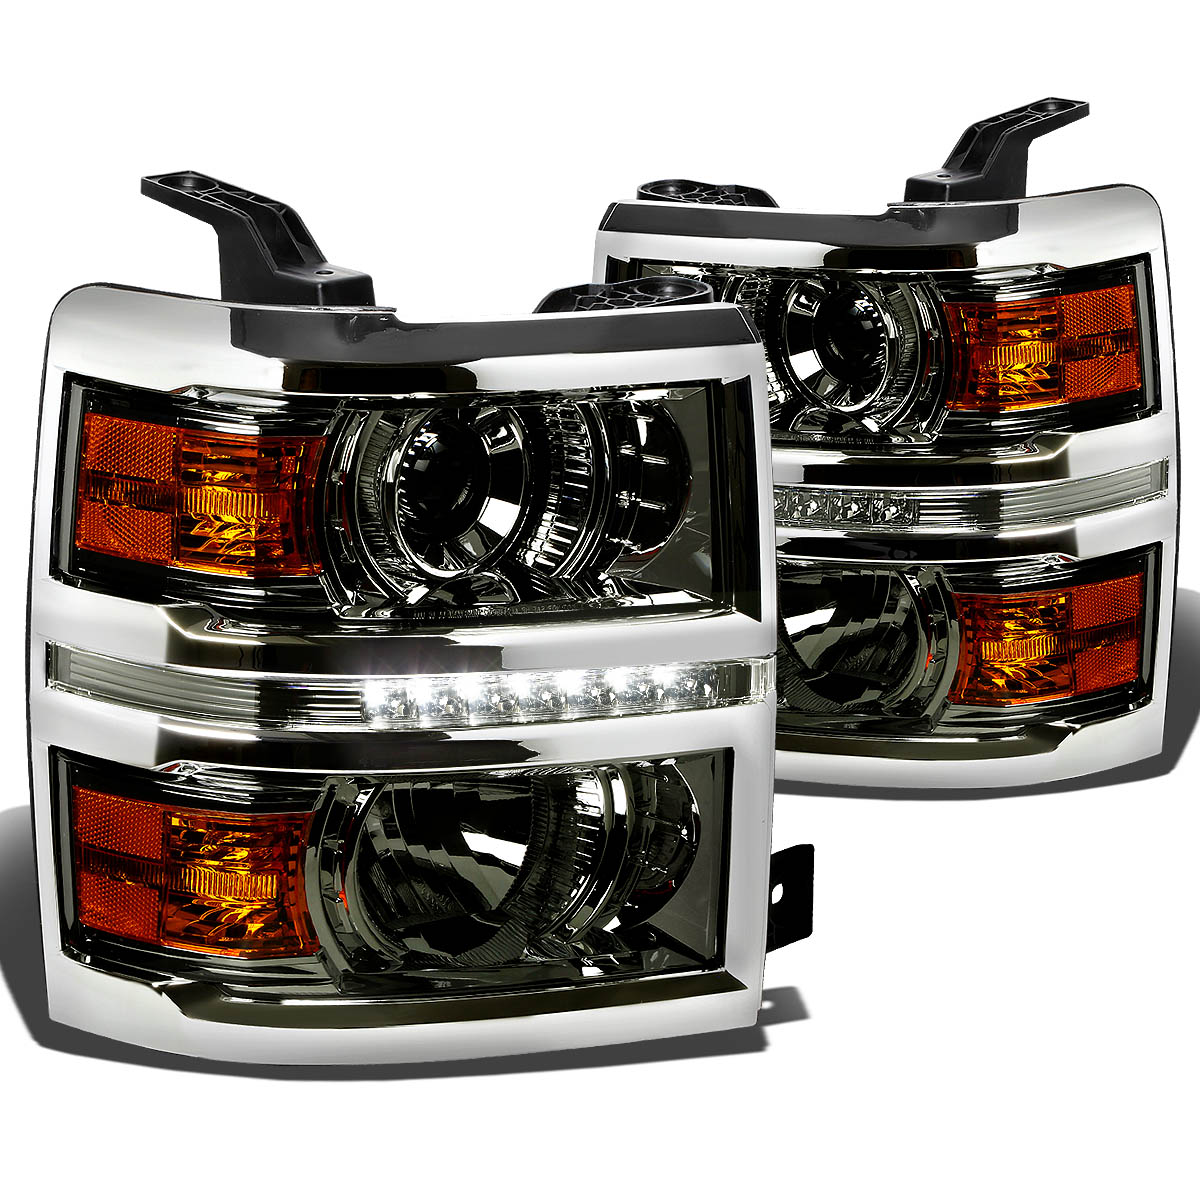 For 14-15 Chevy Silverado LED DRL Light Bar Projector Headlight Smoked Housing Amber Corner Headlamp 1500 Left+Right